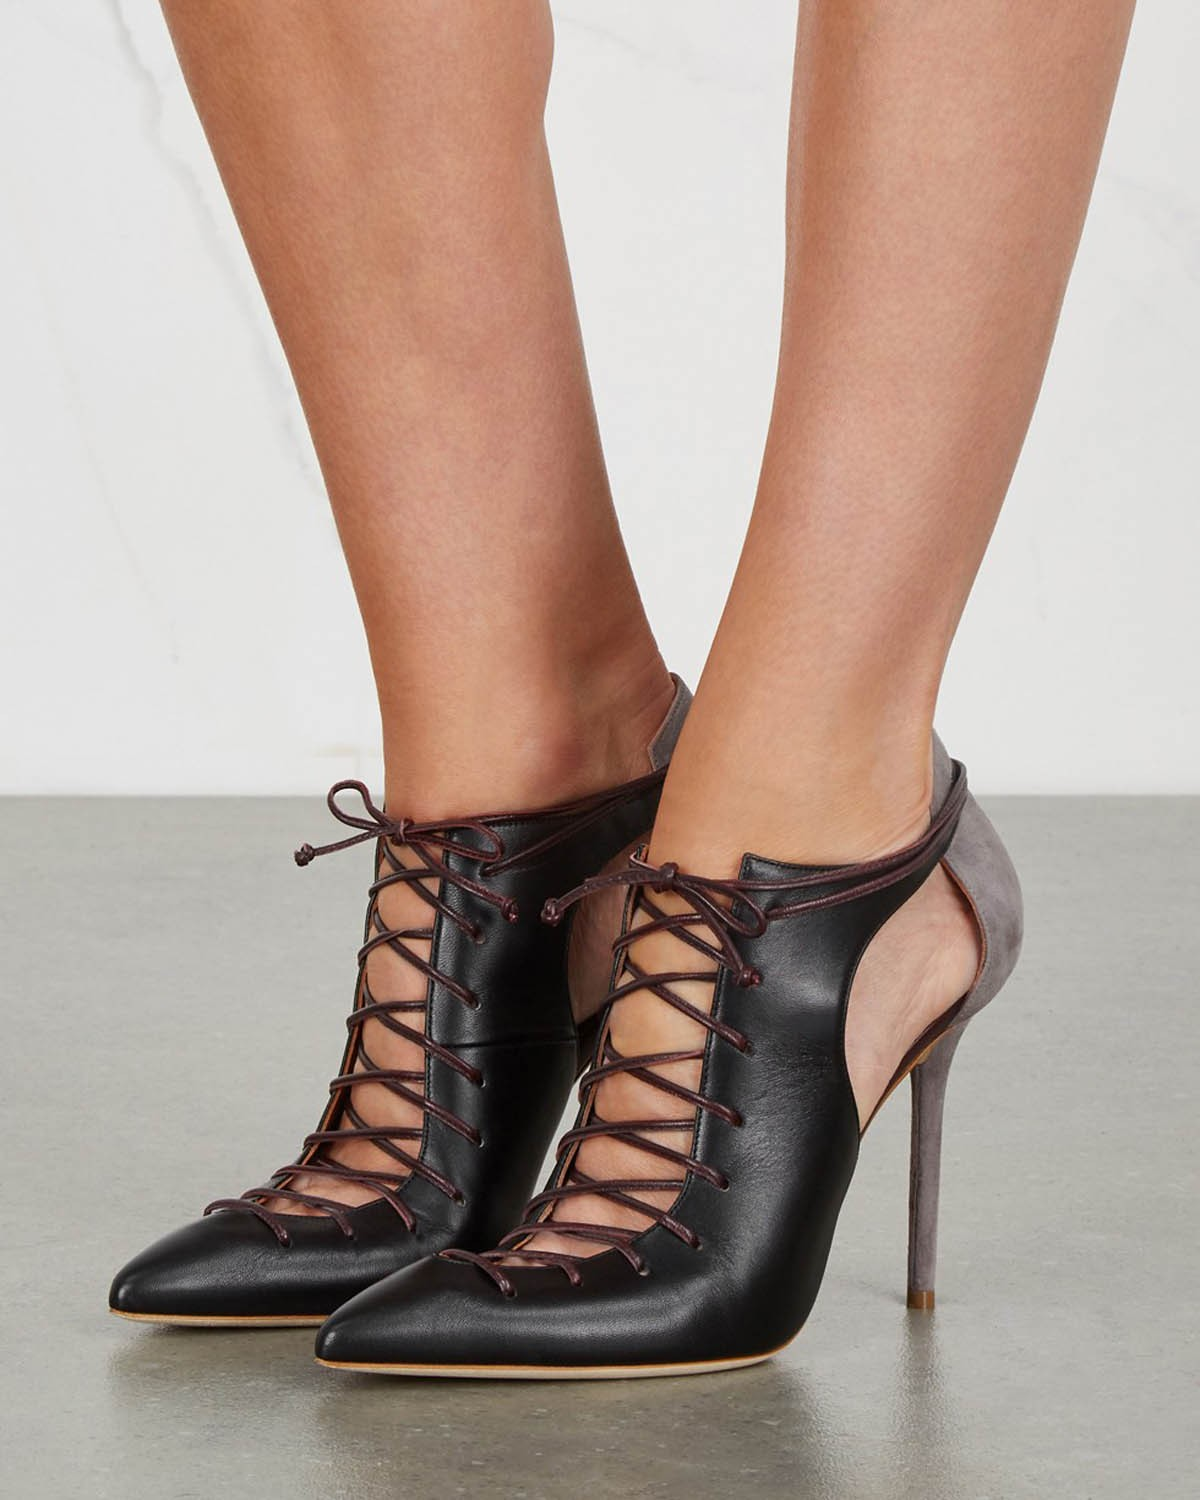 MALONE SOULIERS 'Montana' pumps PpXpLt1ep